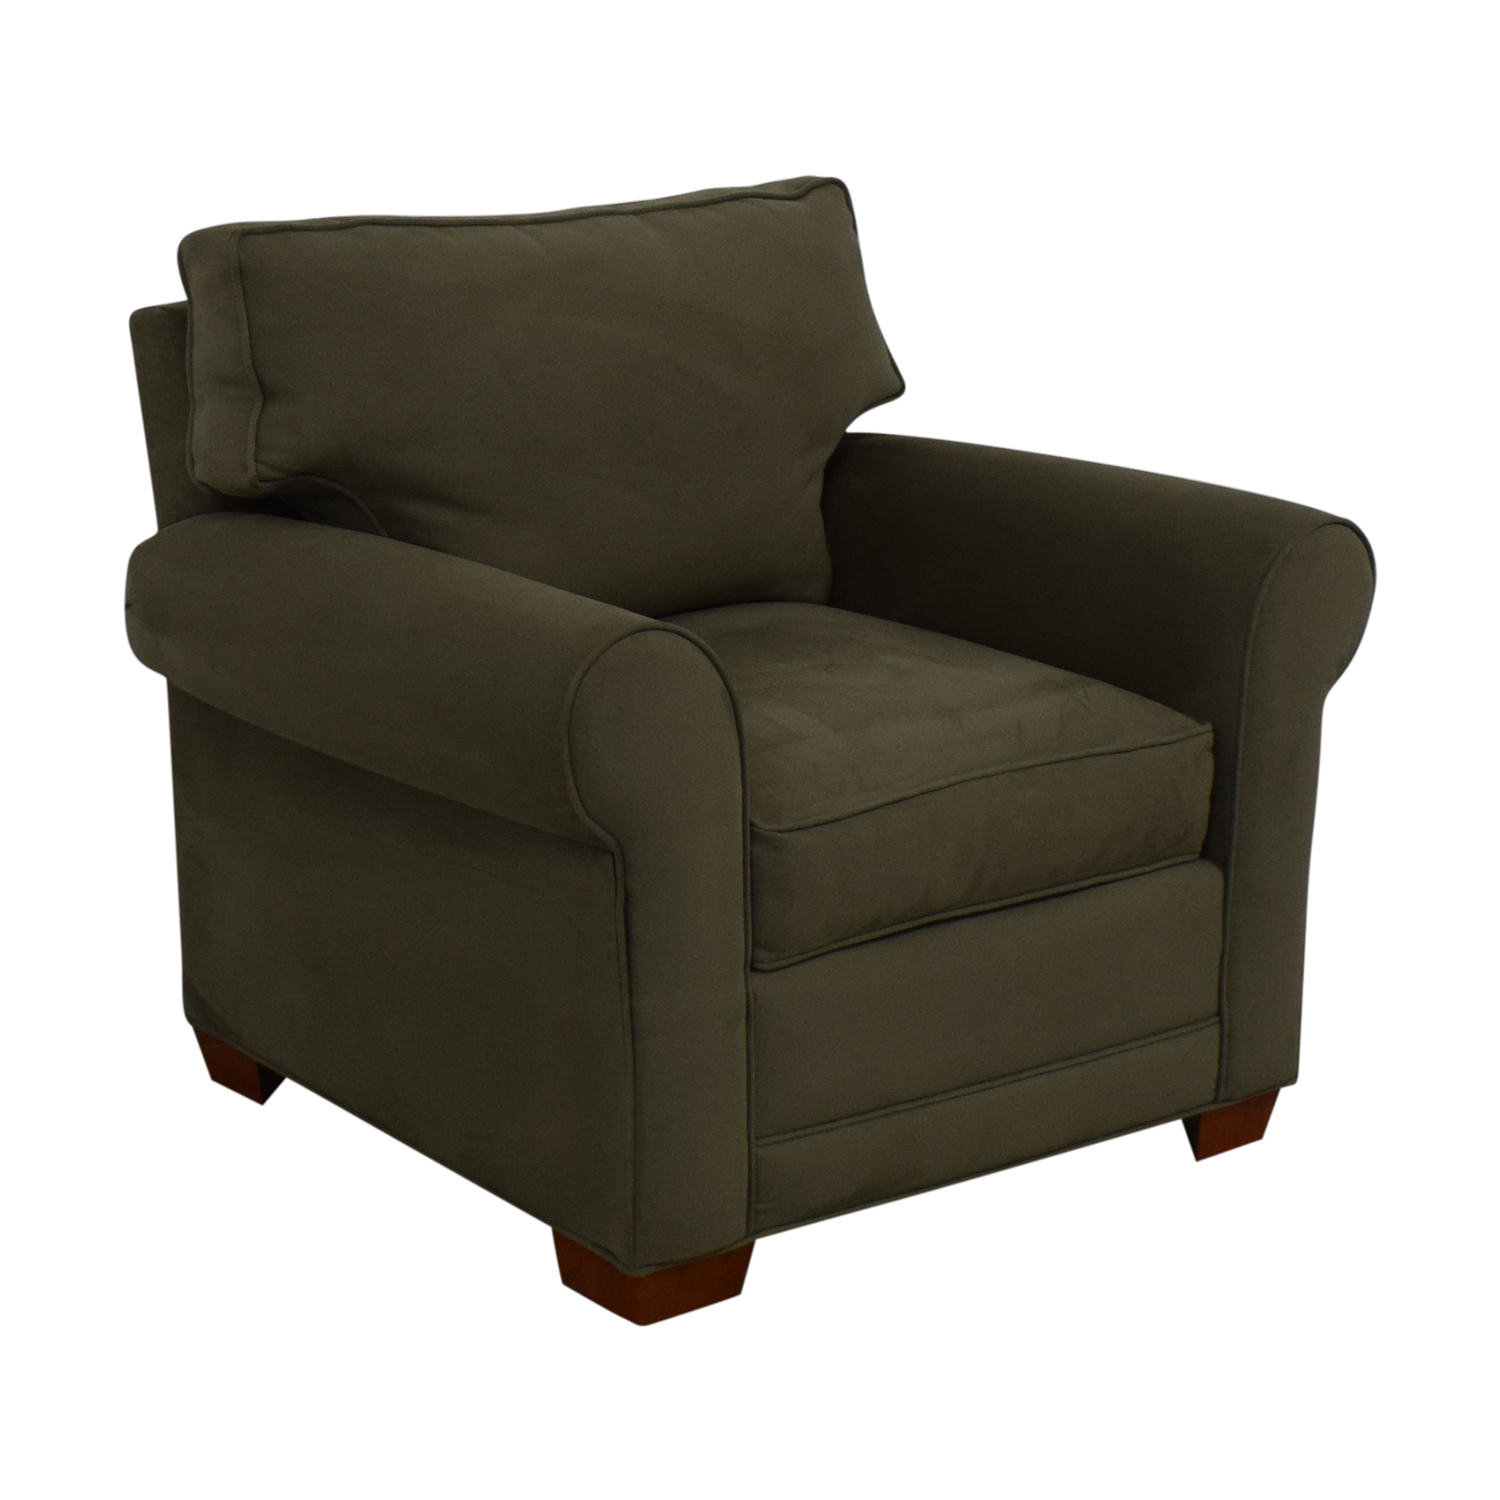 Raymour & Flanigan Raymour & Flanigan Green Accent Chair price